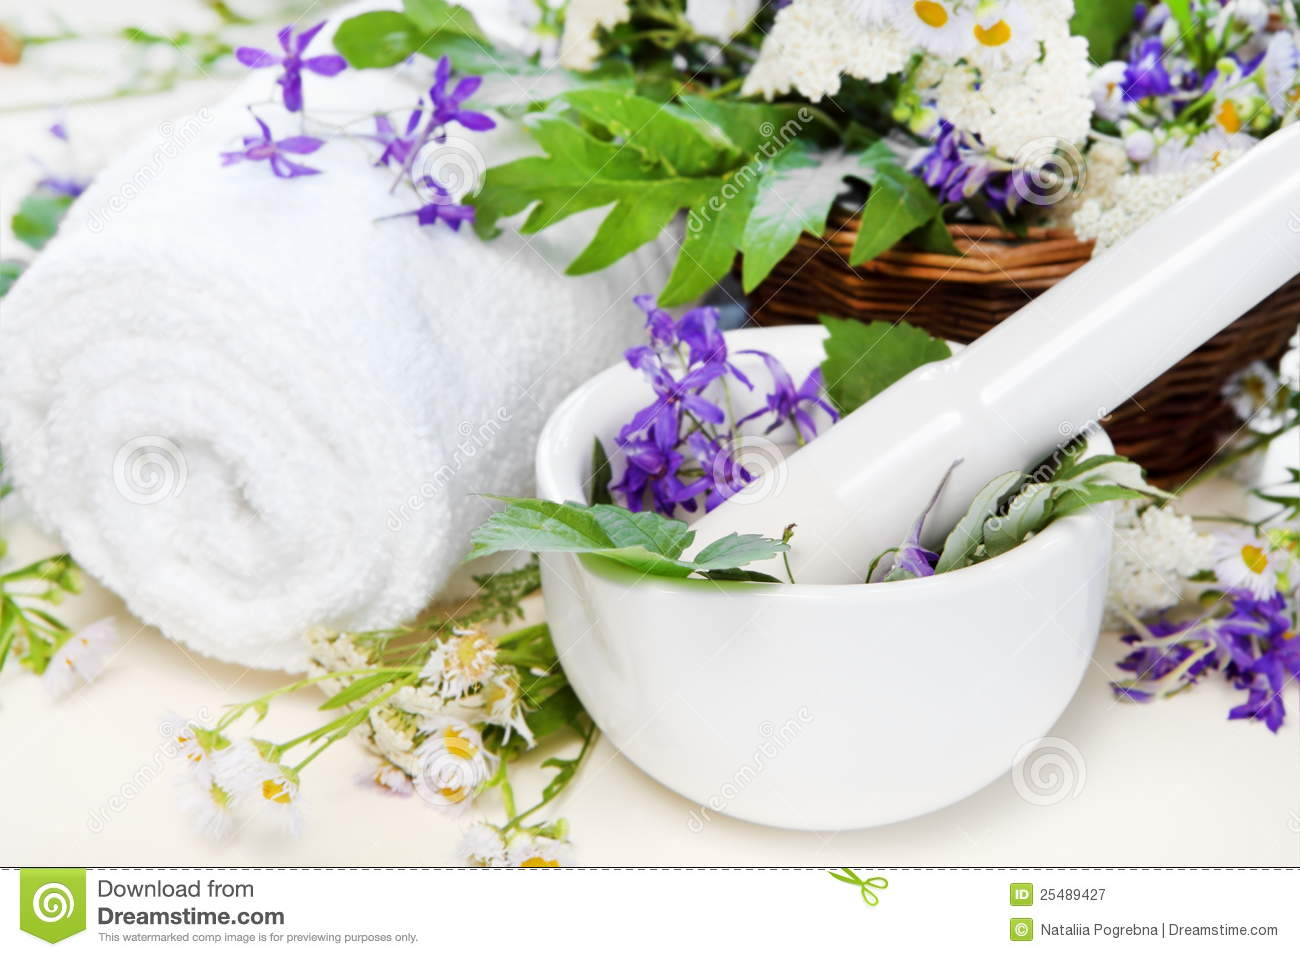 herbal spa & massage review happy ending Devonport